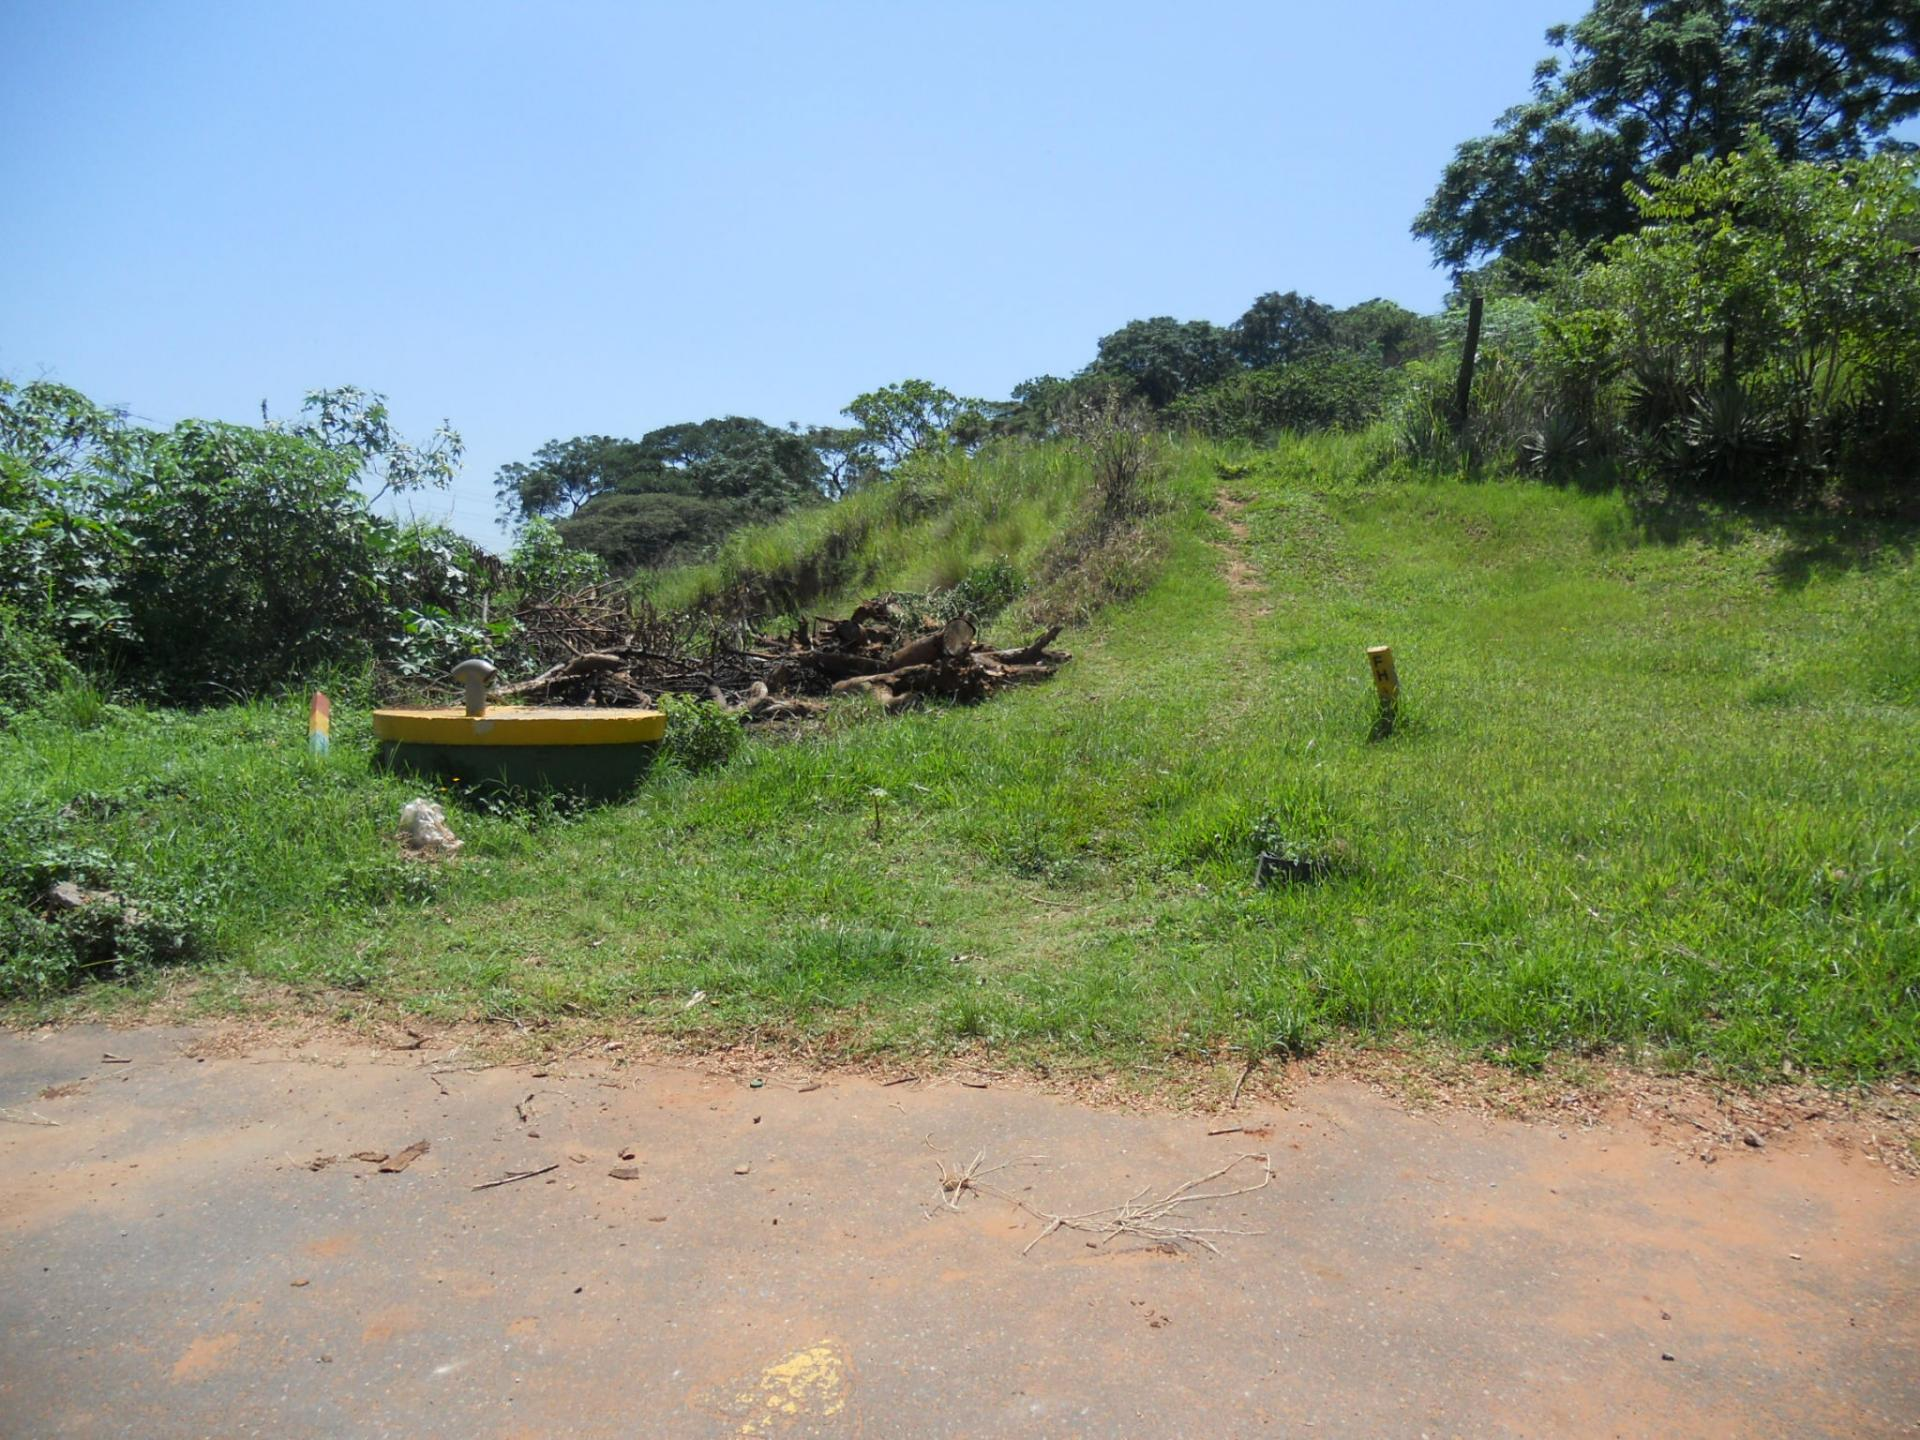 Land for Sale For Sale in Isipingo Hills  Private Sale  MR124453